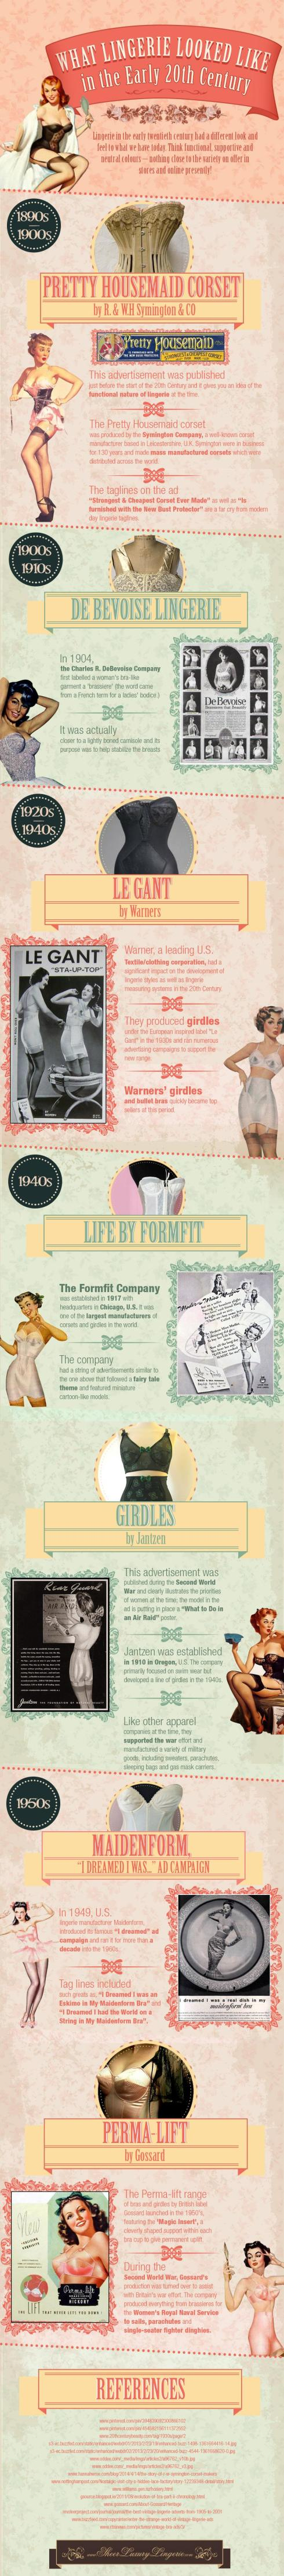 what-lingerie-looked-like-in-the-early-20th-century-Infographic